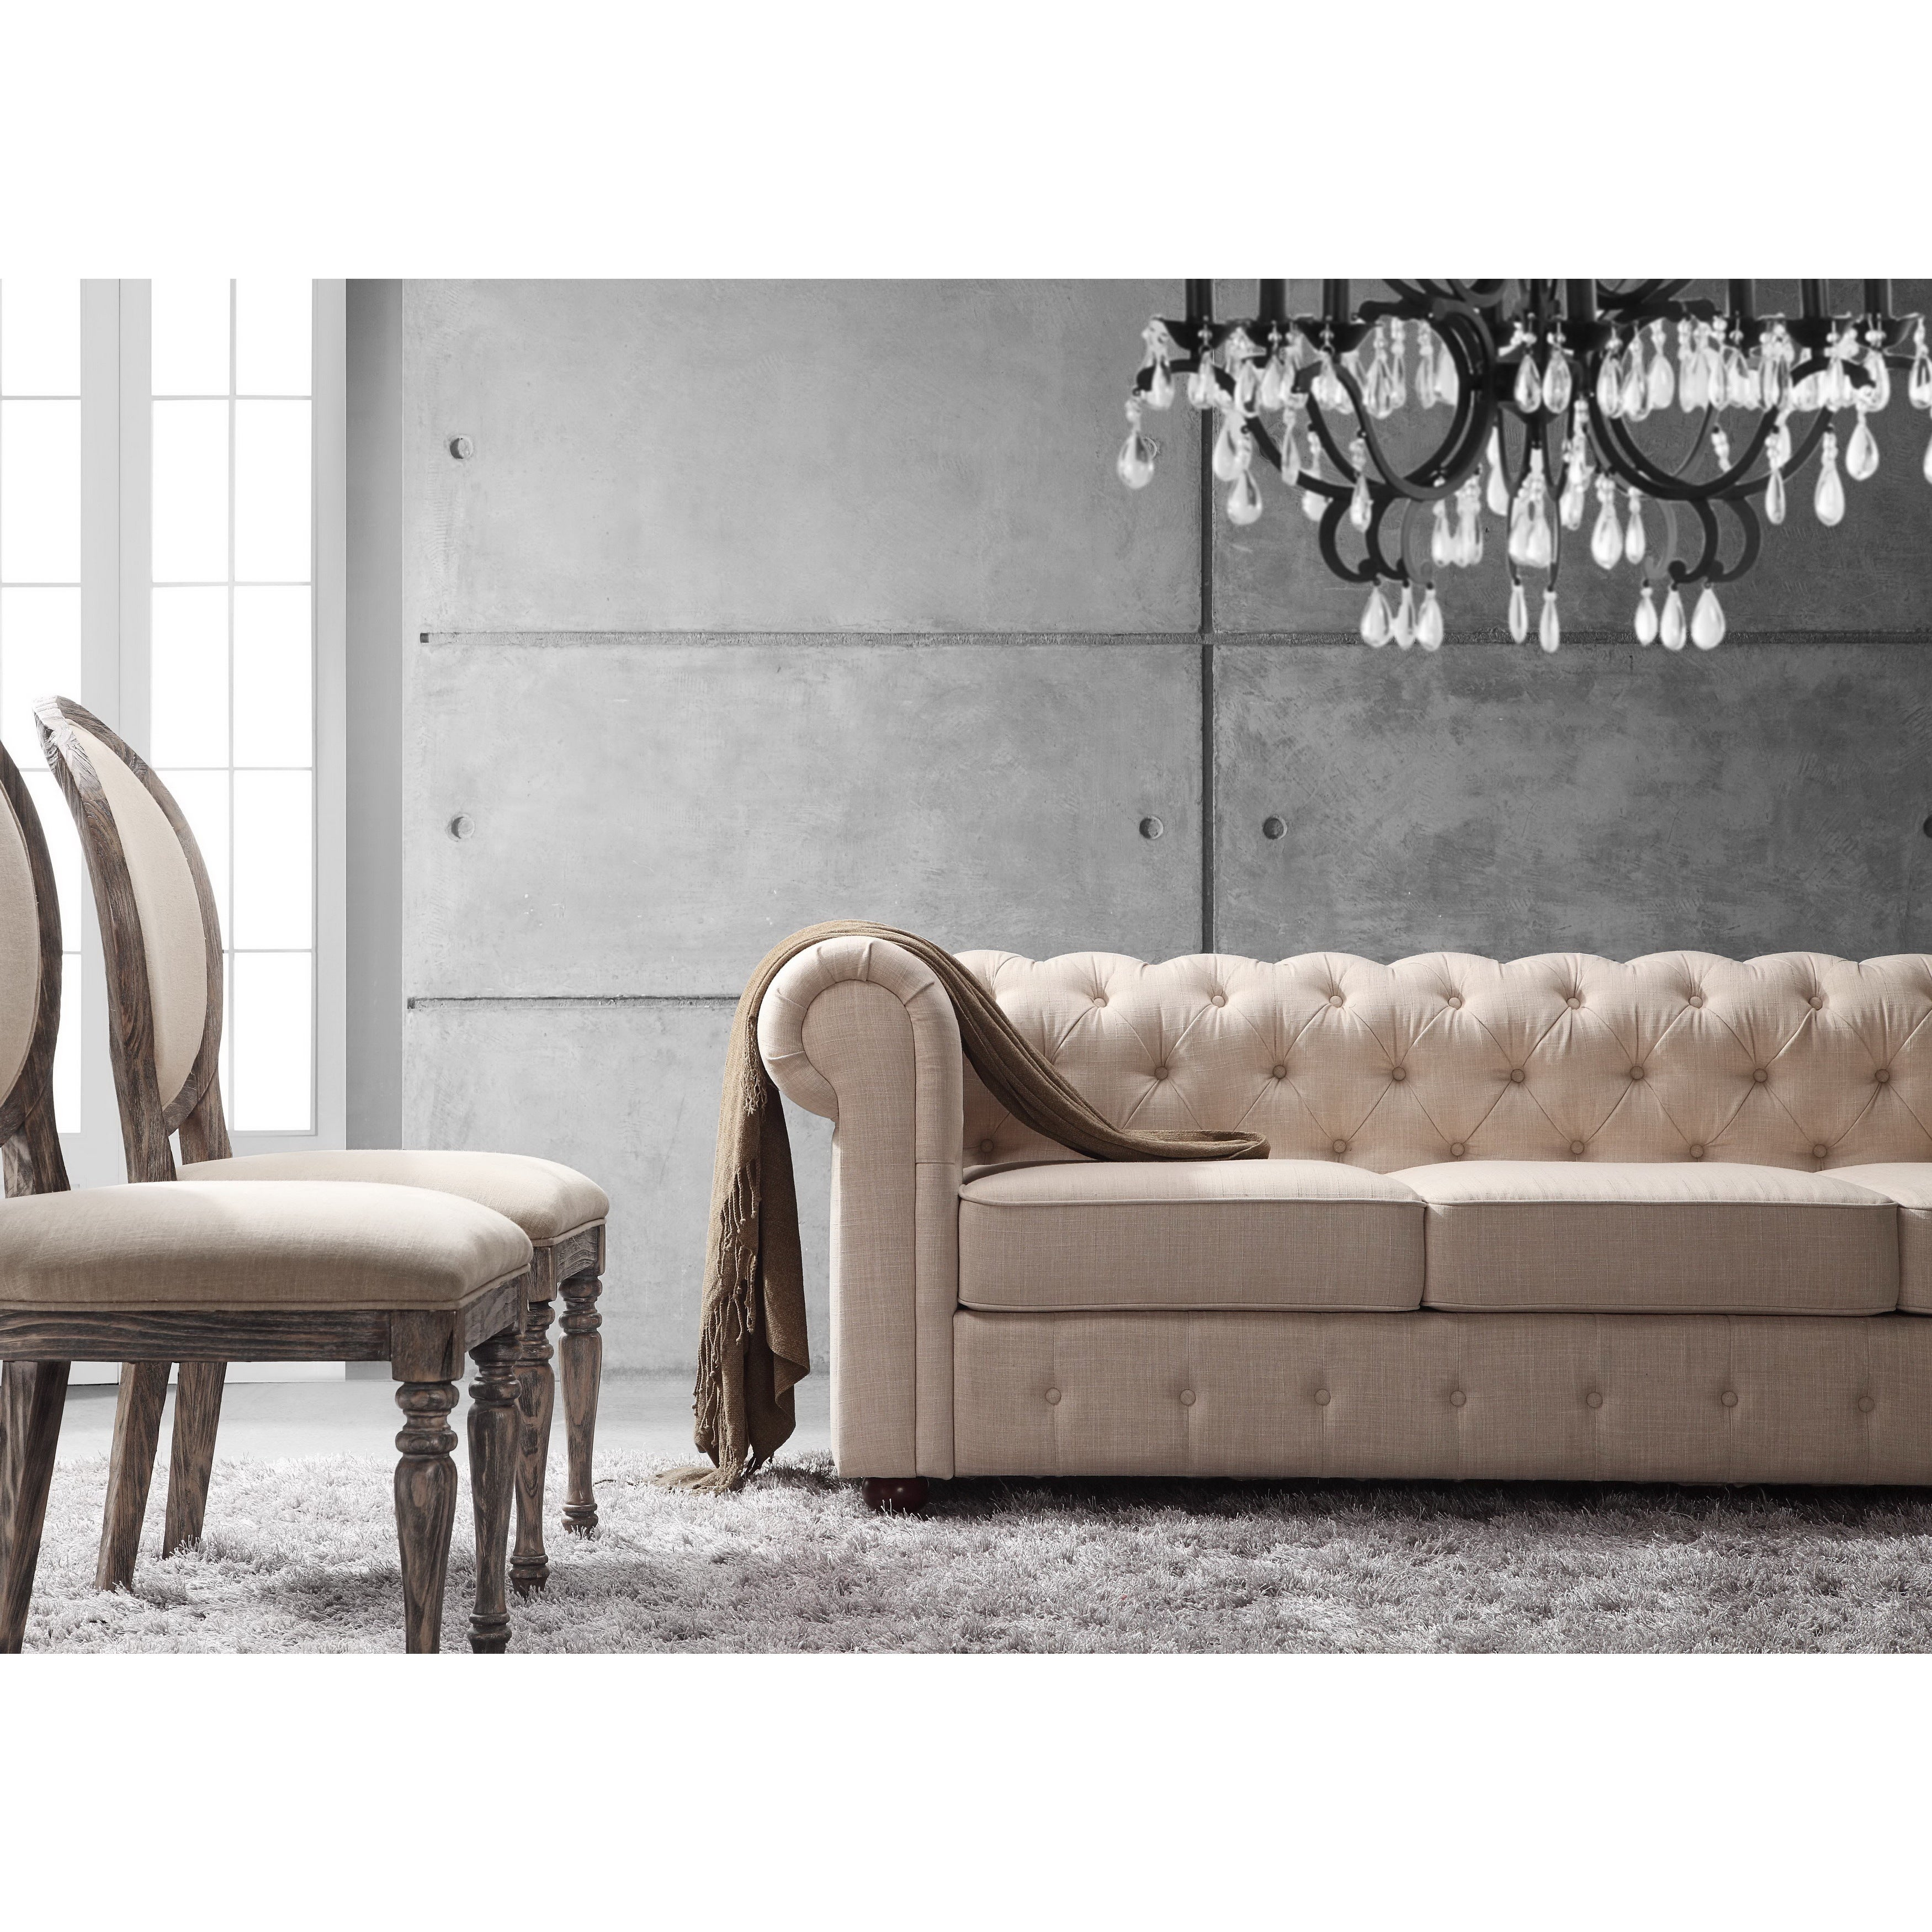 Dingzhi Free Sample Moser Bay Furniture Roll Arm 7 Seats Sectional Sofa Set